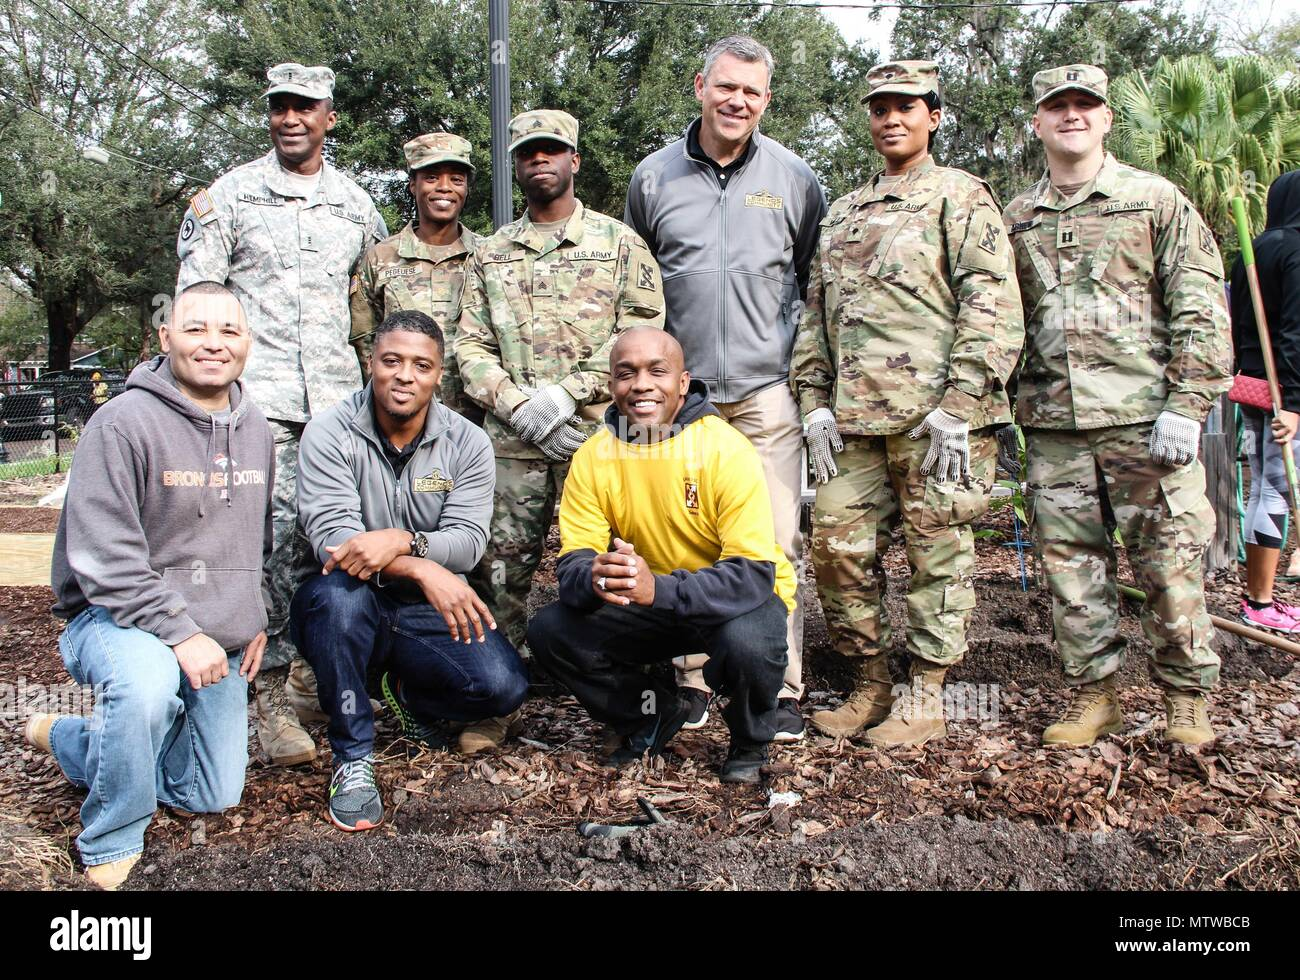 Soldiers from the 143d Sustainment Command (Expeditionary) pose for a group photo with National Football League legends Mark Brunell (top row, third from right) and Warrick Dunn (bottom row, second from left) Jan. 27, 2017, at the Colonialtown North Community Garden in Orlando, Fla. The Army Reserve and the NFL joined forces to lighten the environmental impact produced the first ever Pro Bowl to take place in Orlando by bringing one of the city's oldest community gardens back to its former, greener glory. The players and Soldiers worked side-by-side with scores of other volunteers from Central - Stock Image